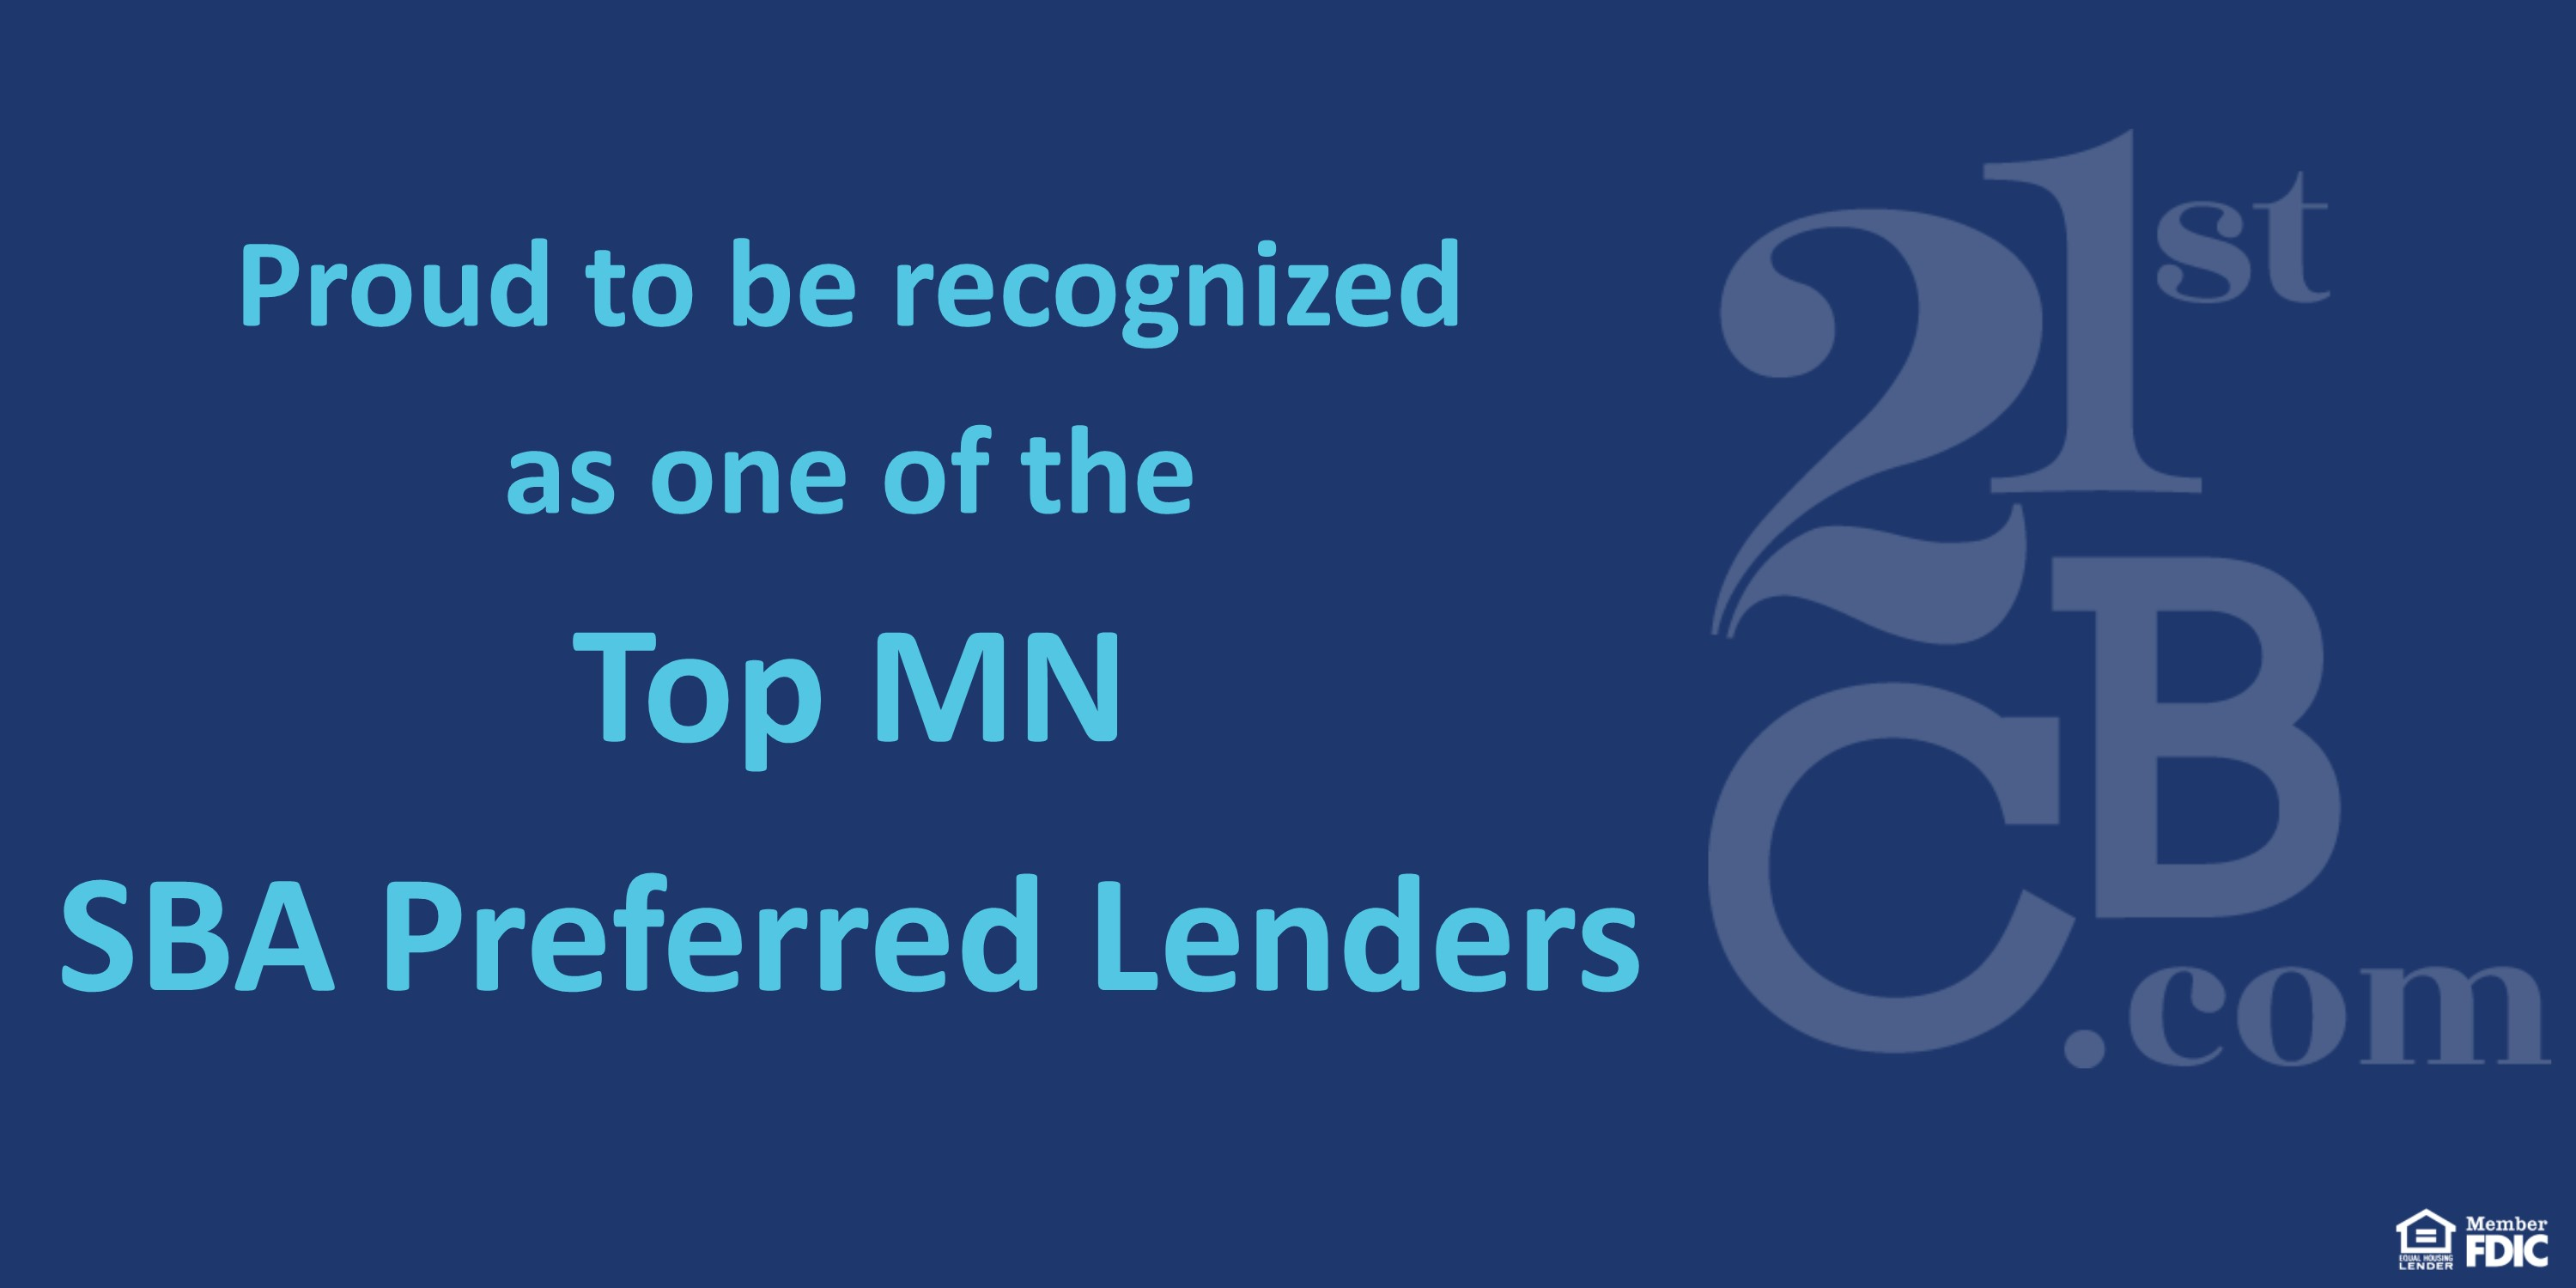 SBA Loan Lending in Minnesota Up Nearly 4%